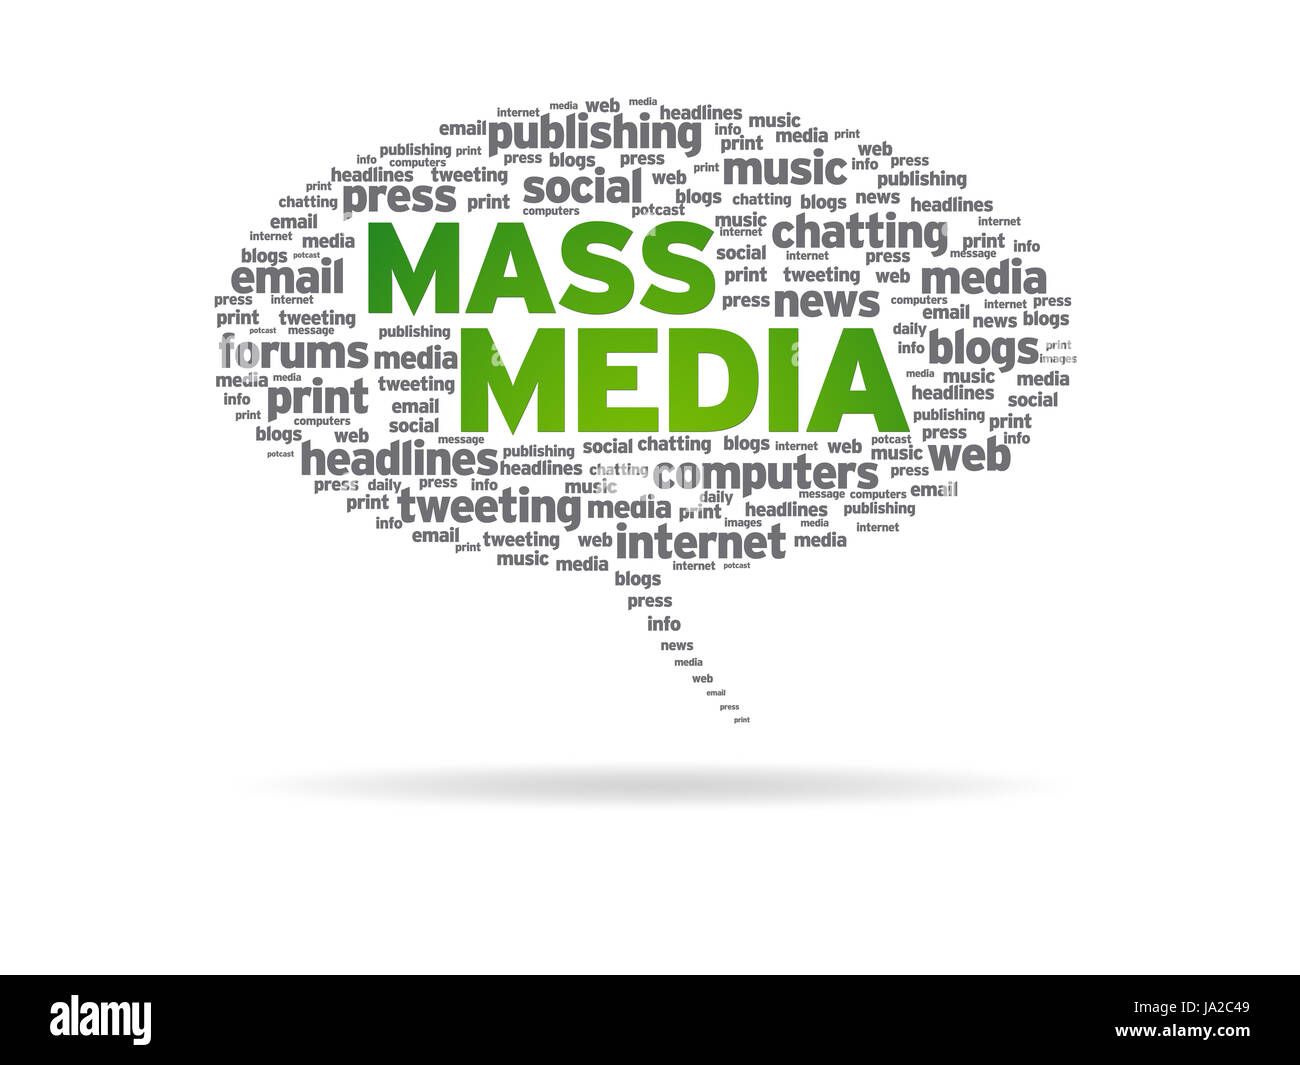 social, news, email, press, daily press, coverage, chat, mass media ...